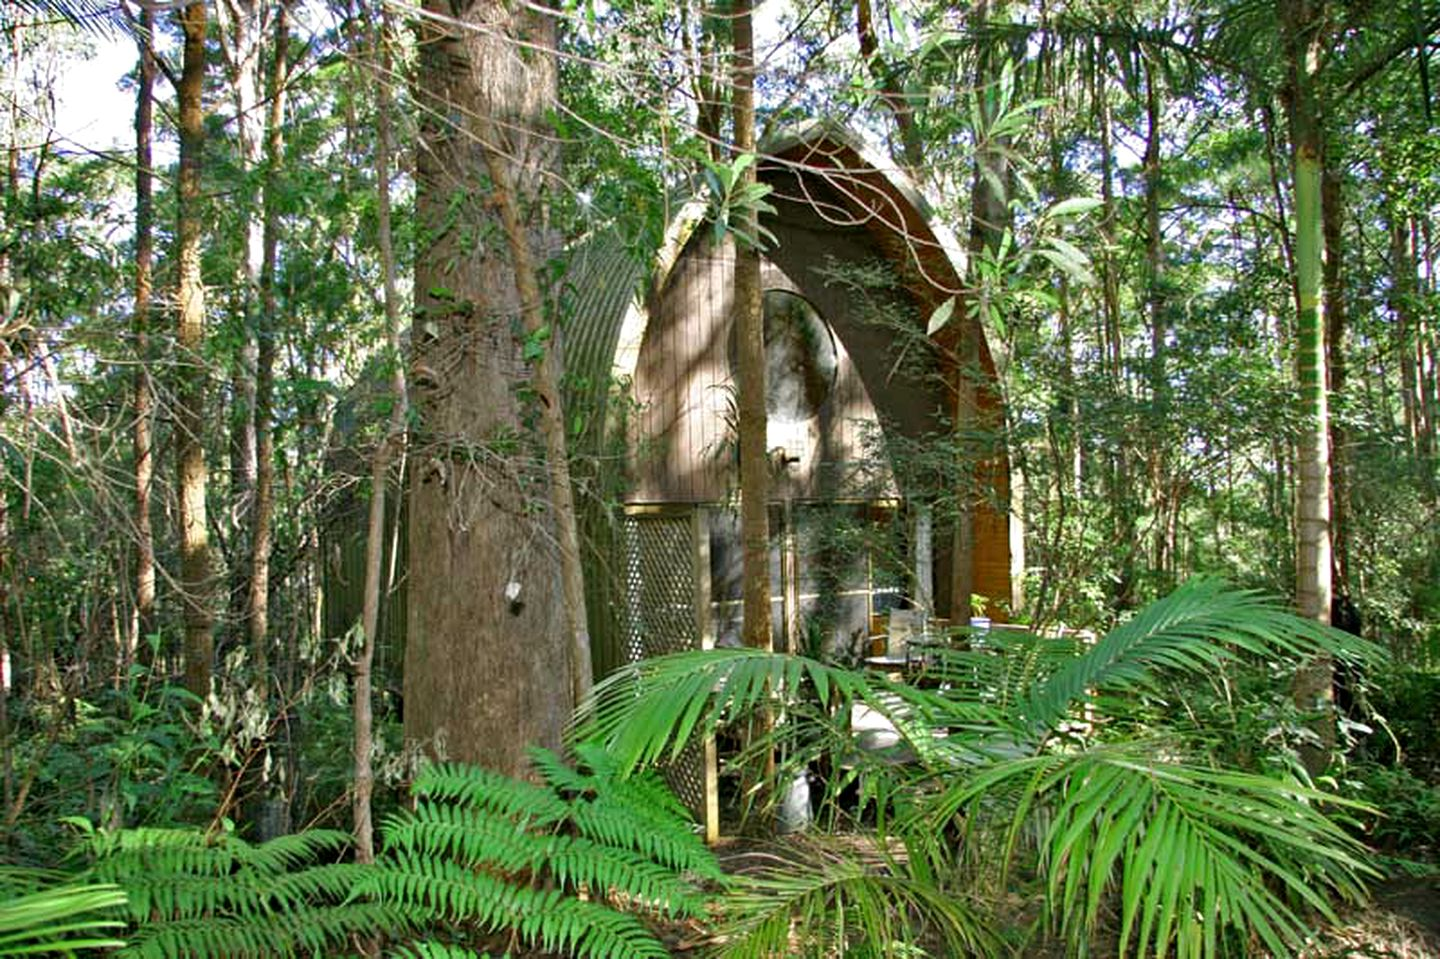 Cabins (Springbrook, Queensland, Australia)